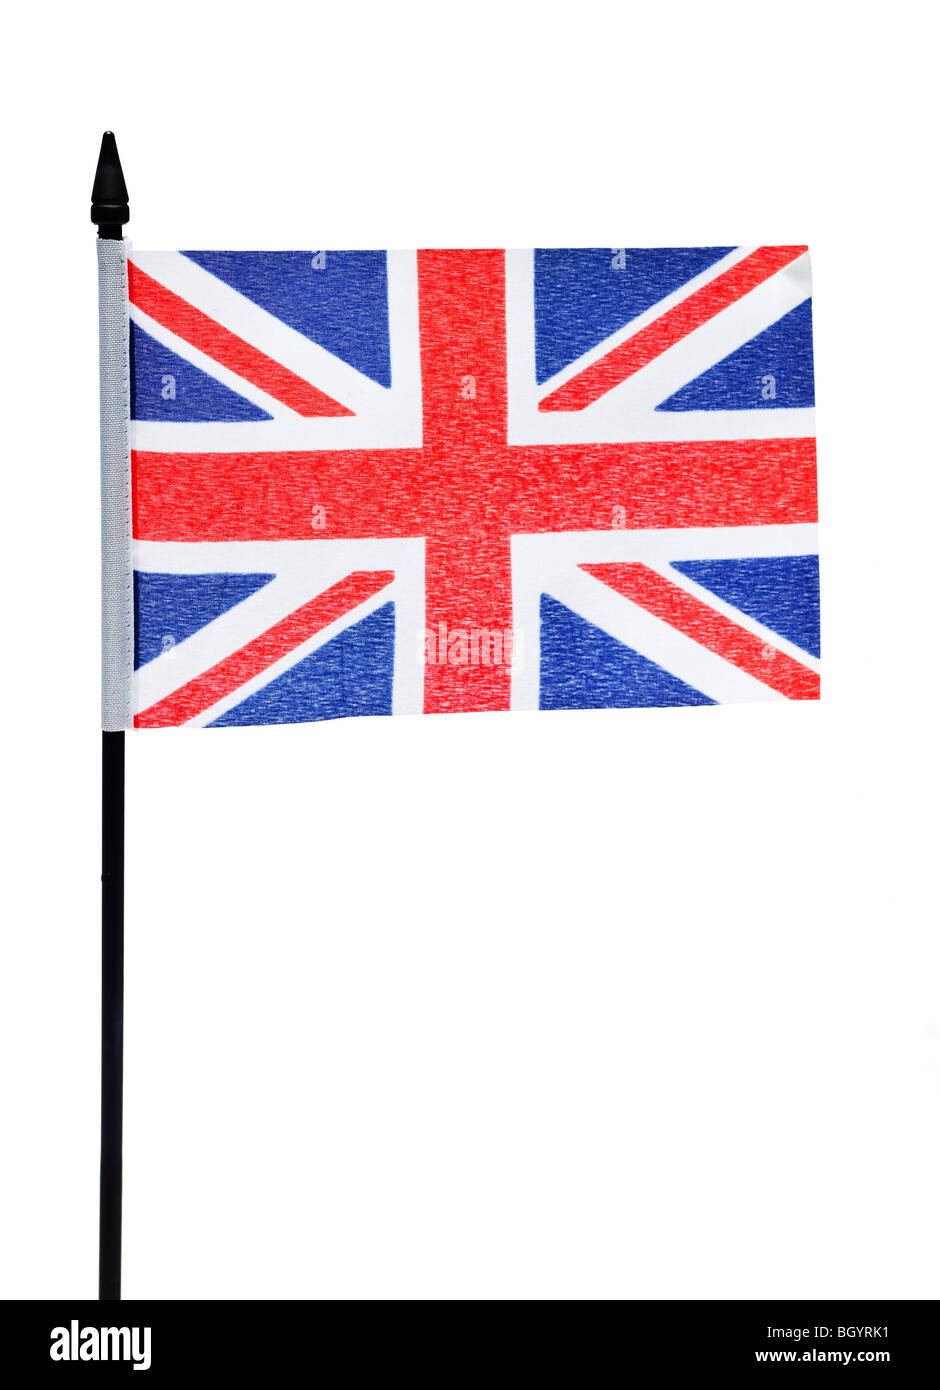 Union Jack flag of the United Kingdom of Great Britain and Northern Ireland - Stock Image